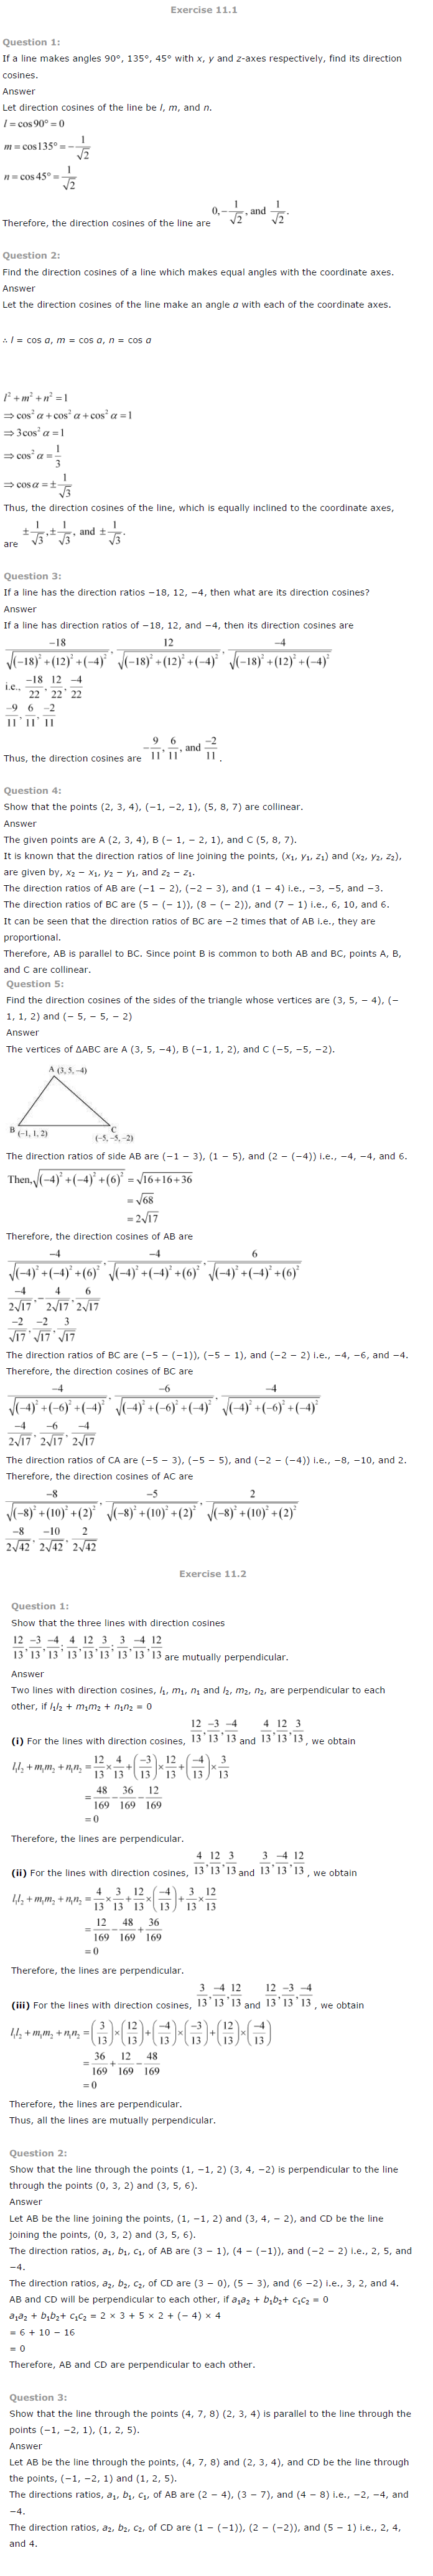 ncert solutions for class 12 maths chapter 11 pdf download